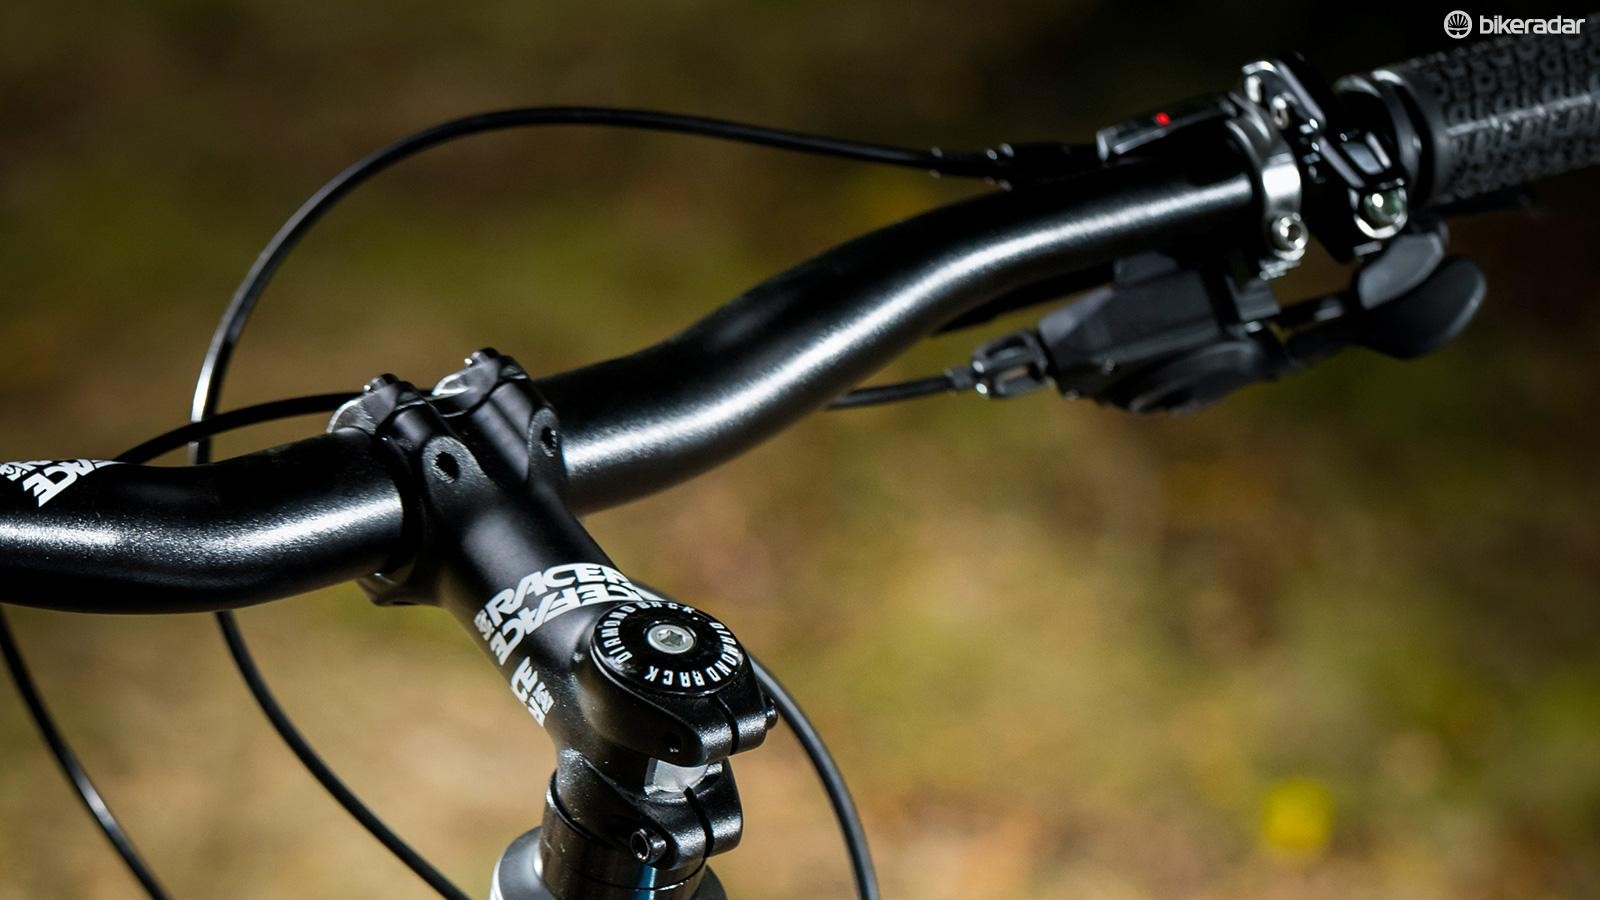 No need to breathe in between tight gaps thanks to the 740mm wide bar